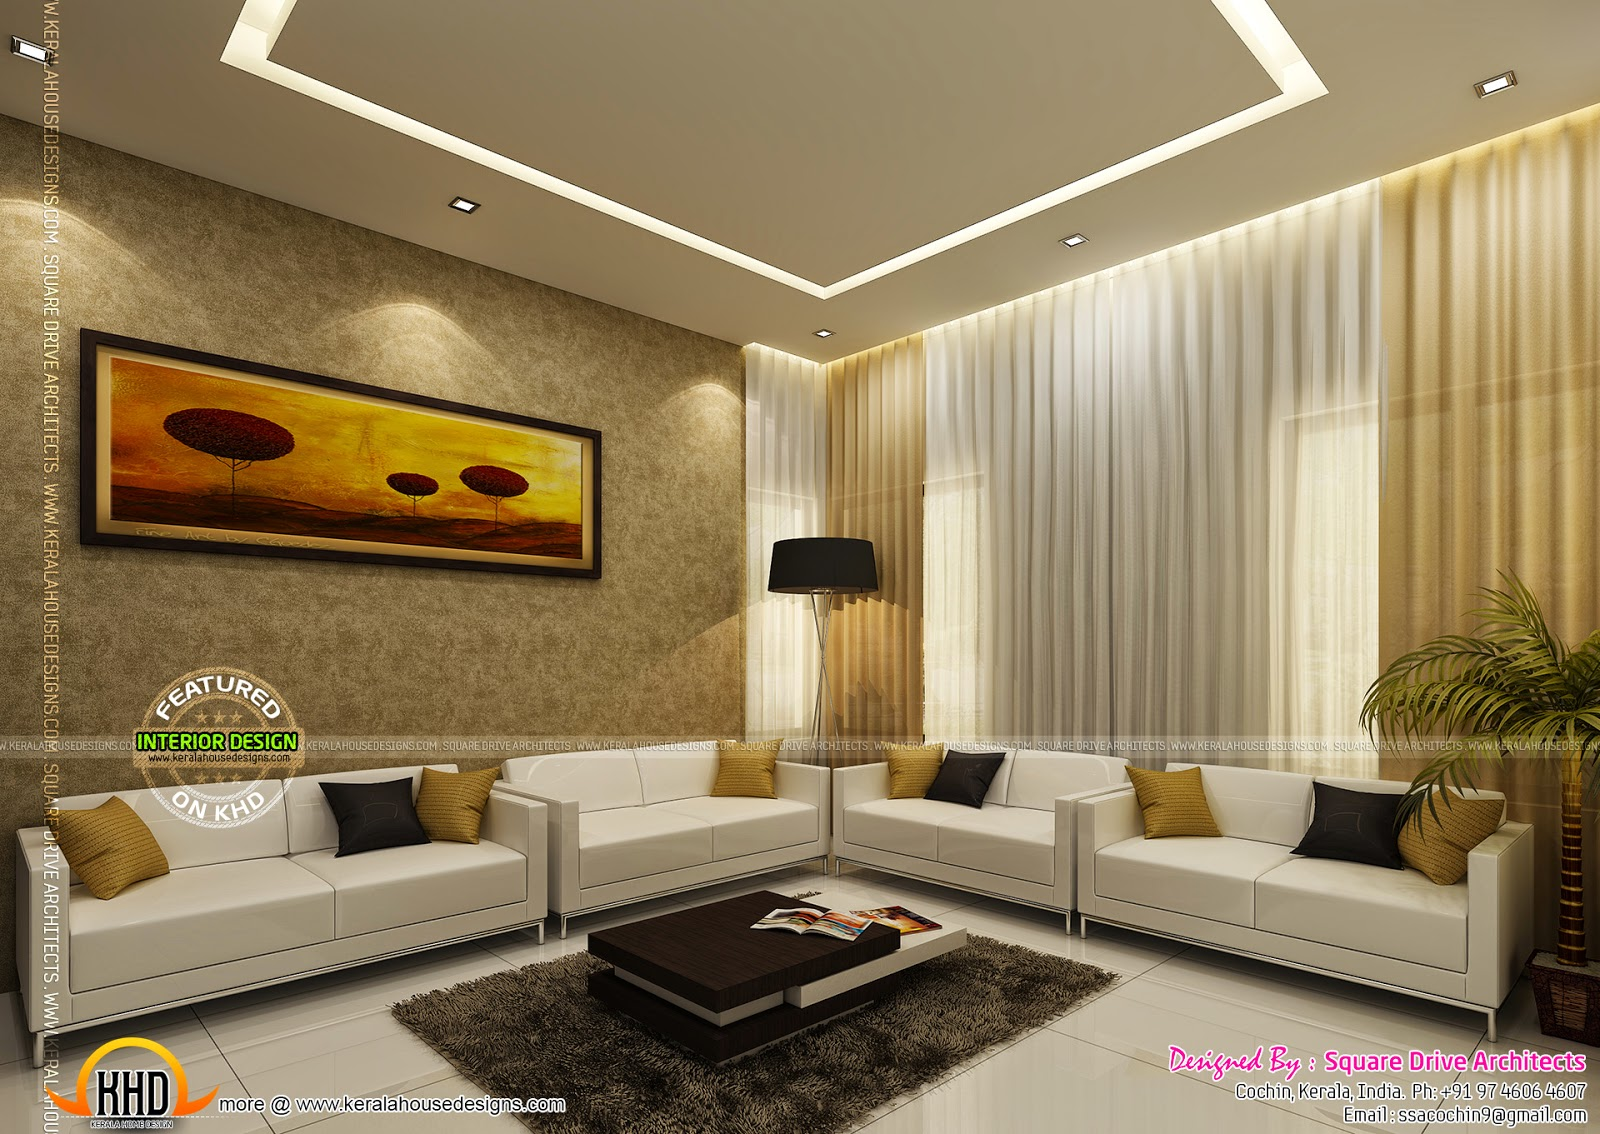 S Design Interieur Home Interiors Designs Kerala Home Design And Floor Plans